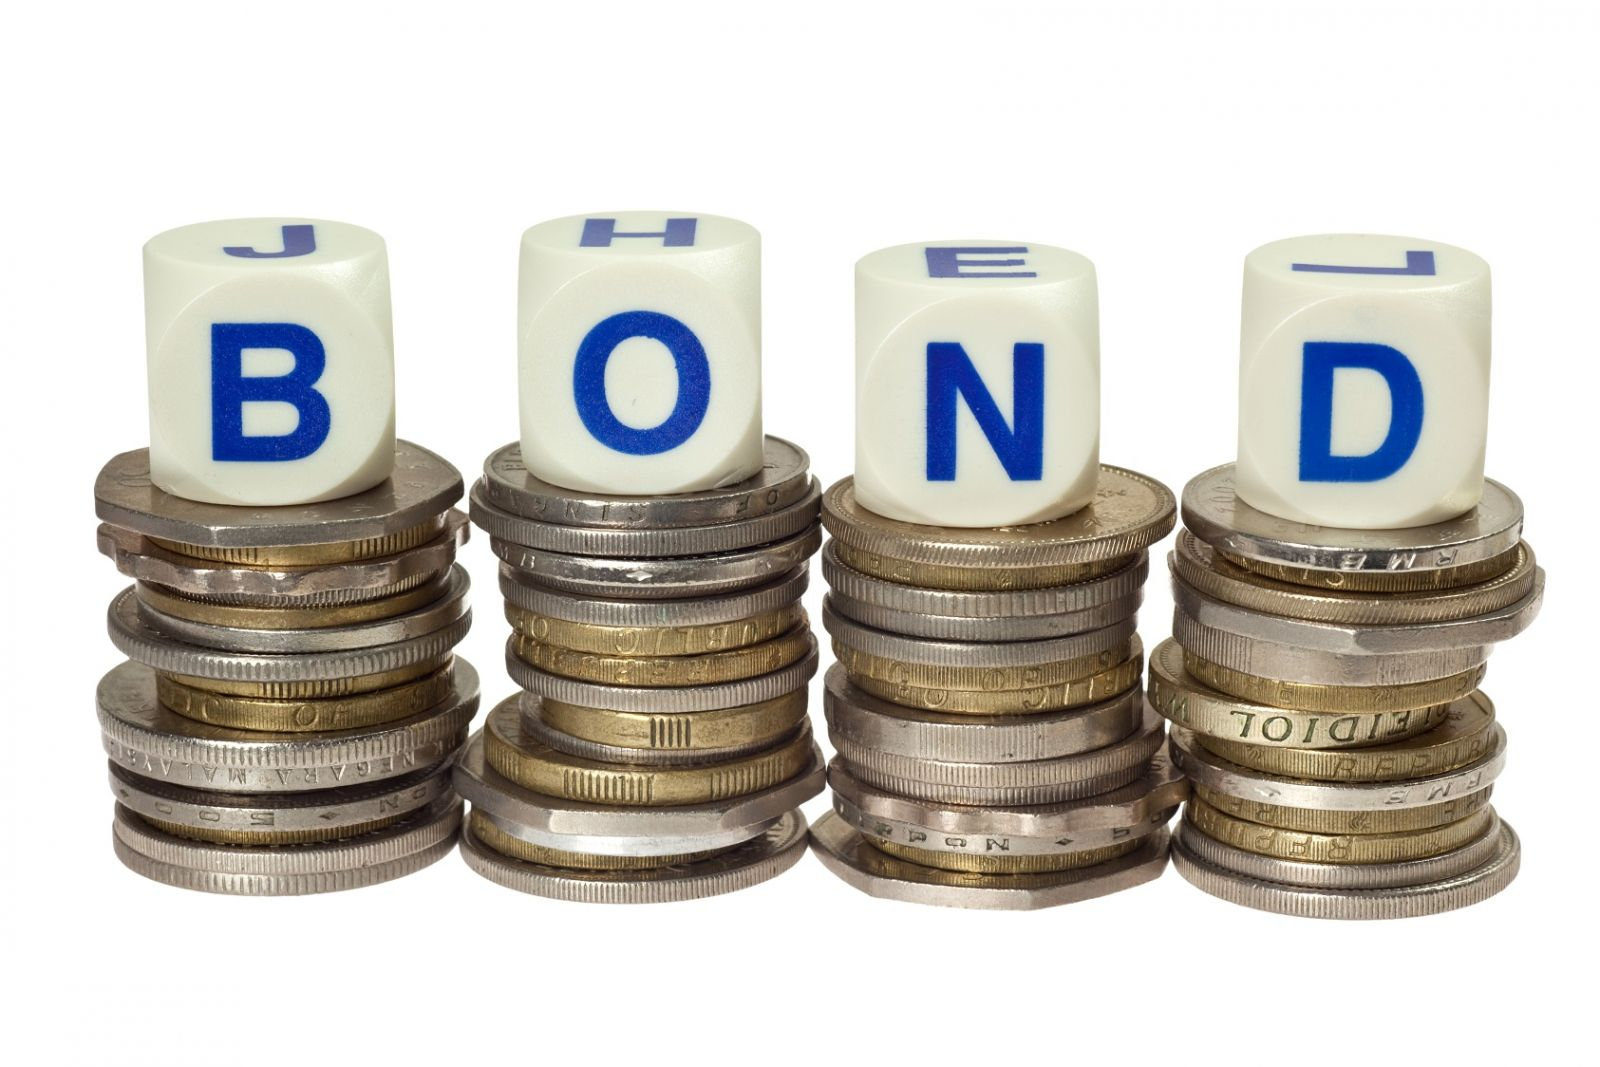 When is the best time to cash-in those old savings bonds